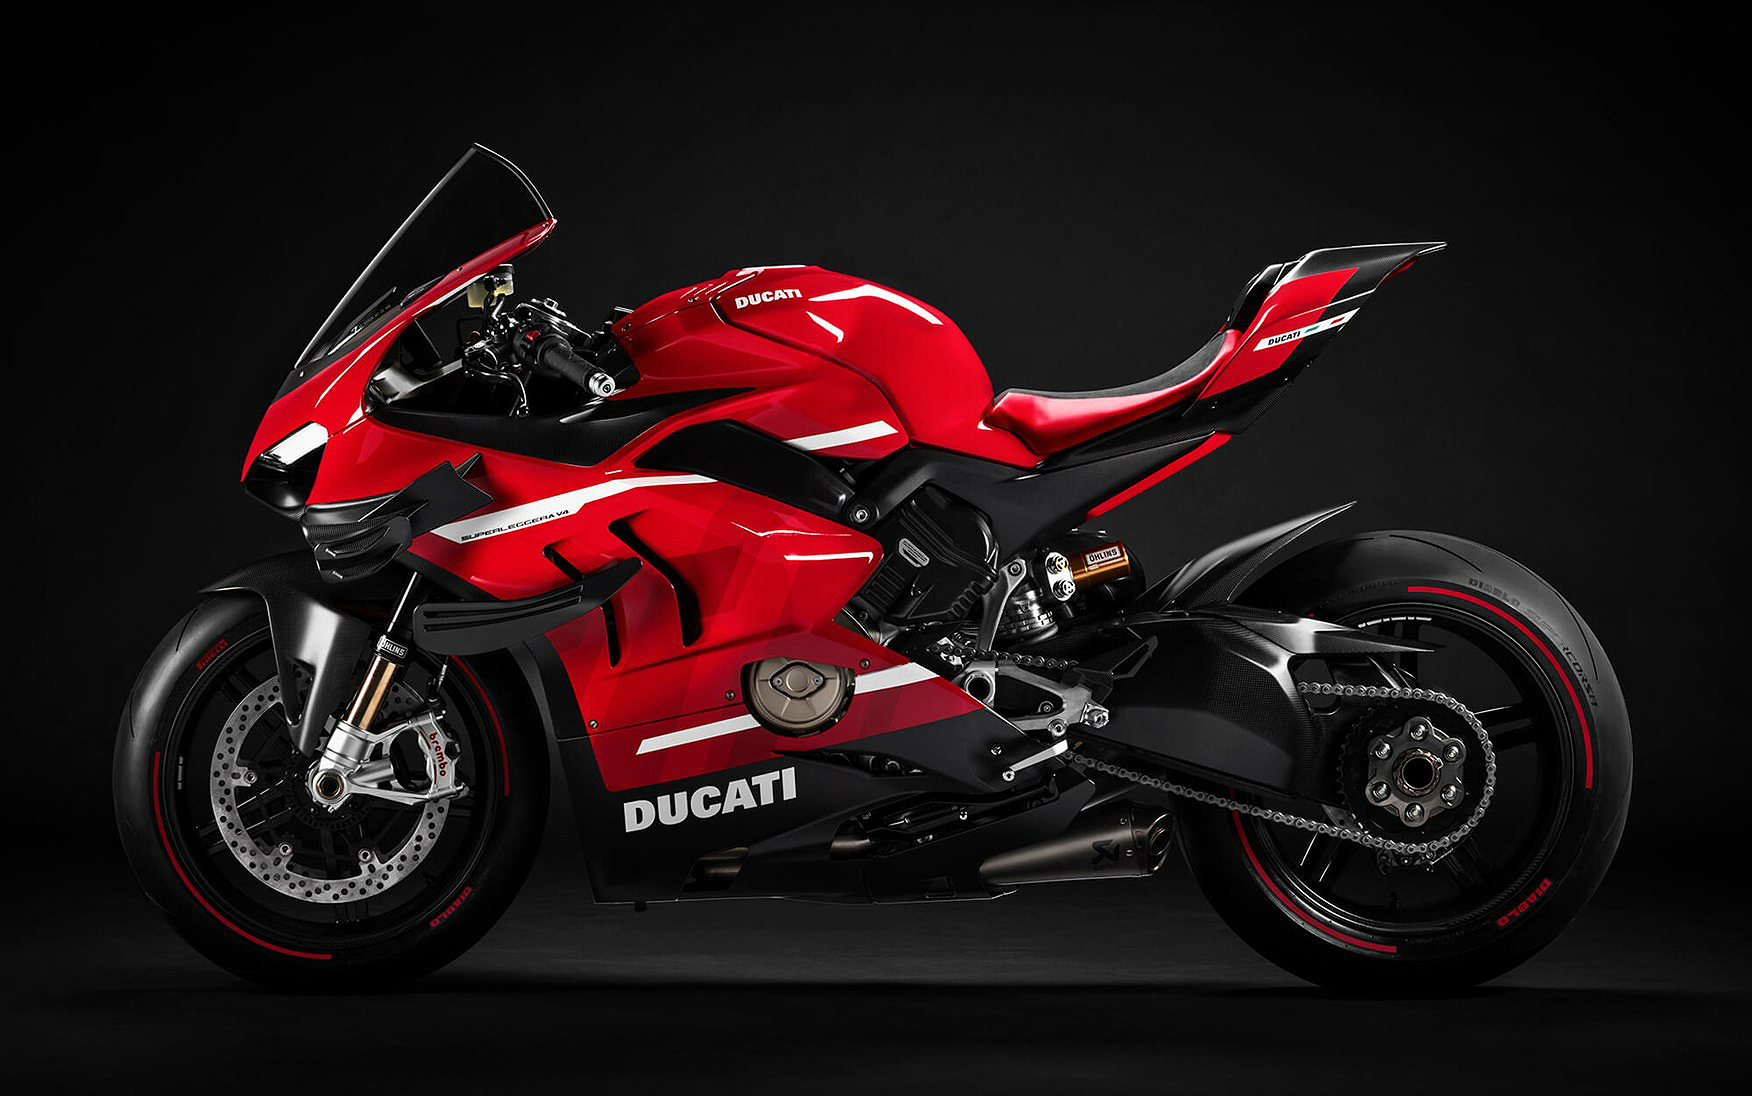 Ducati Superleggera V4 Motorcycle